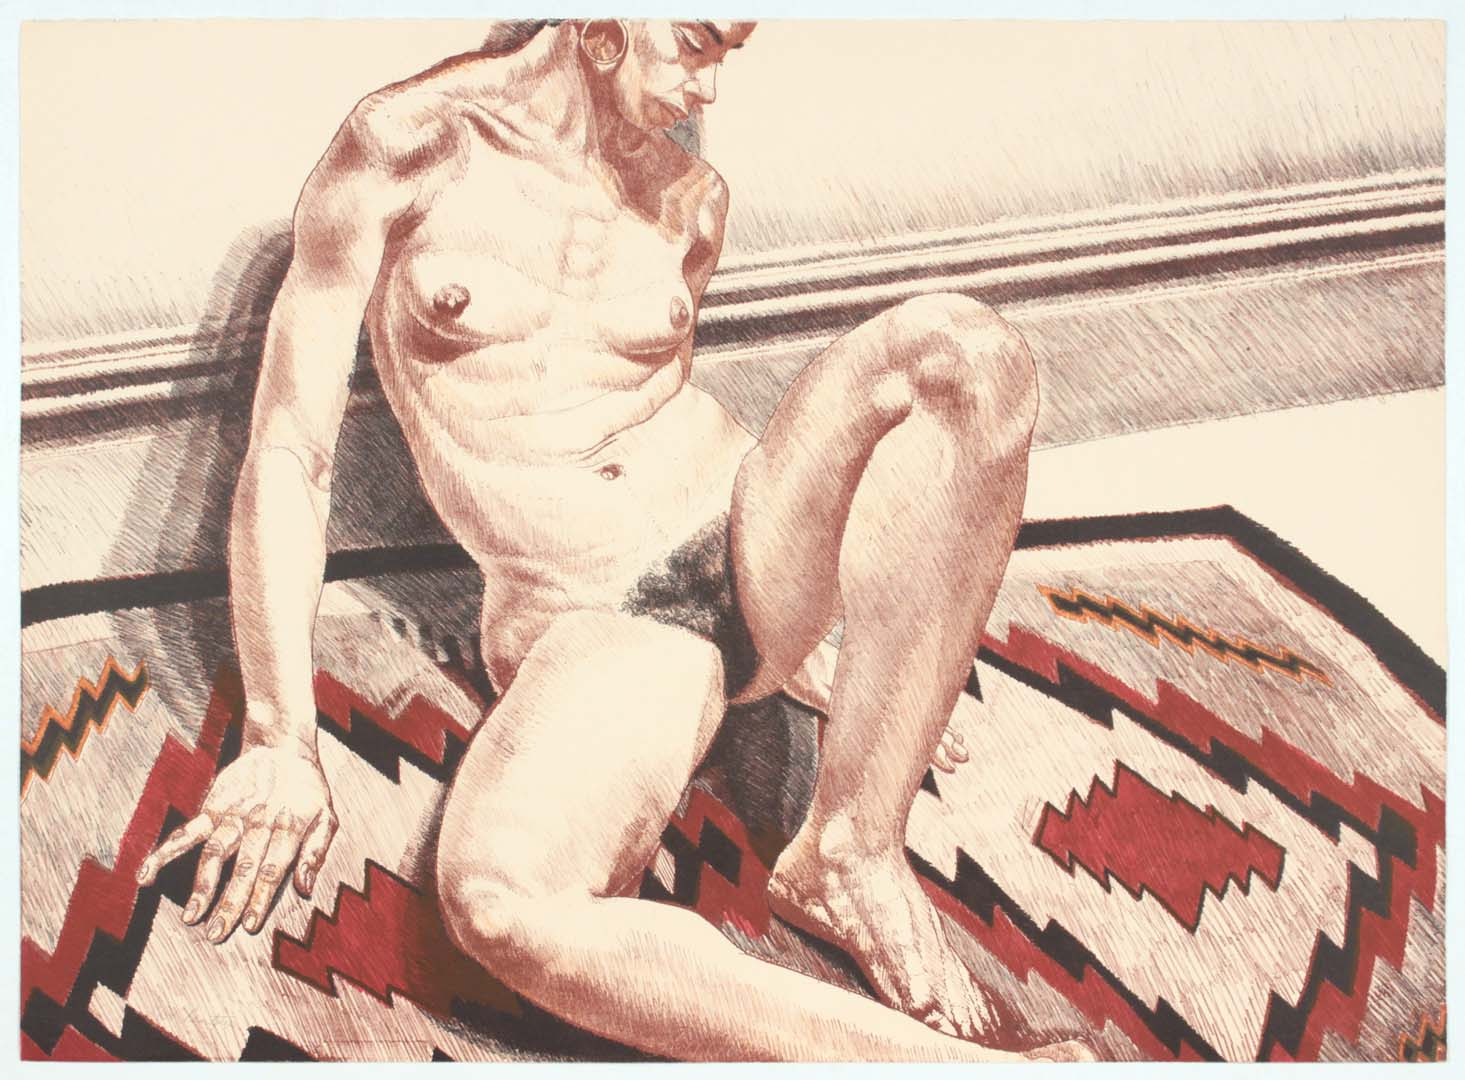 "1972 Nude on Navajo Rug Lithograph on Paper 24.5"" x 34"""